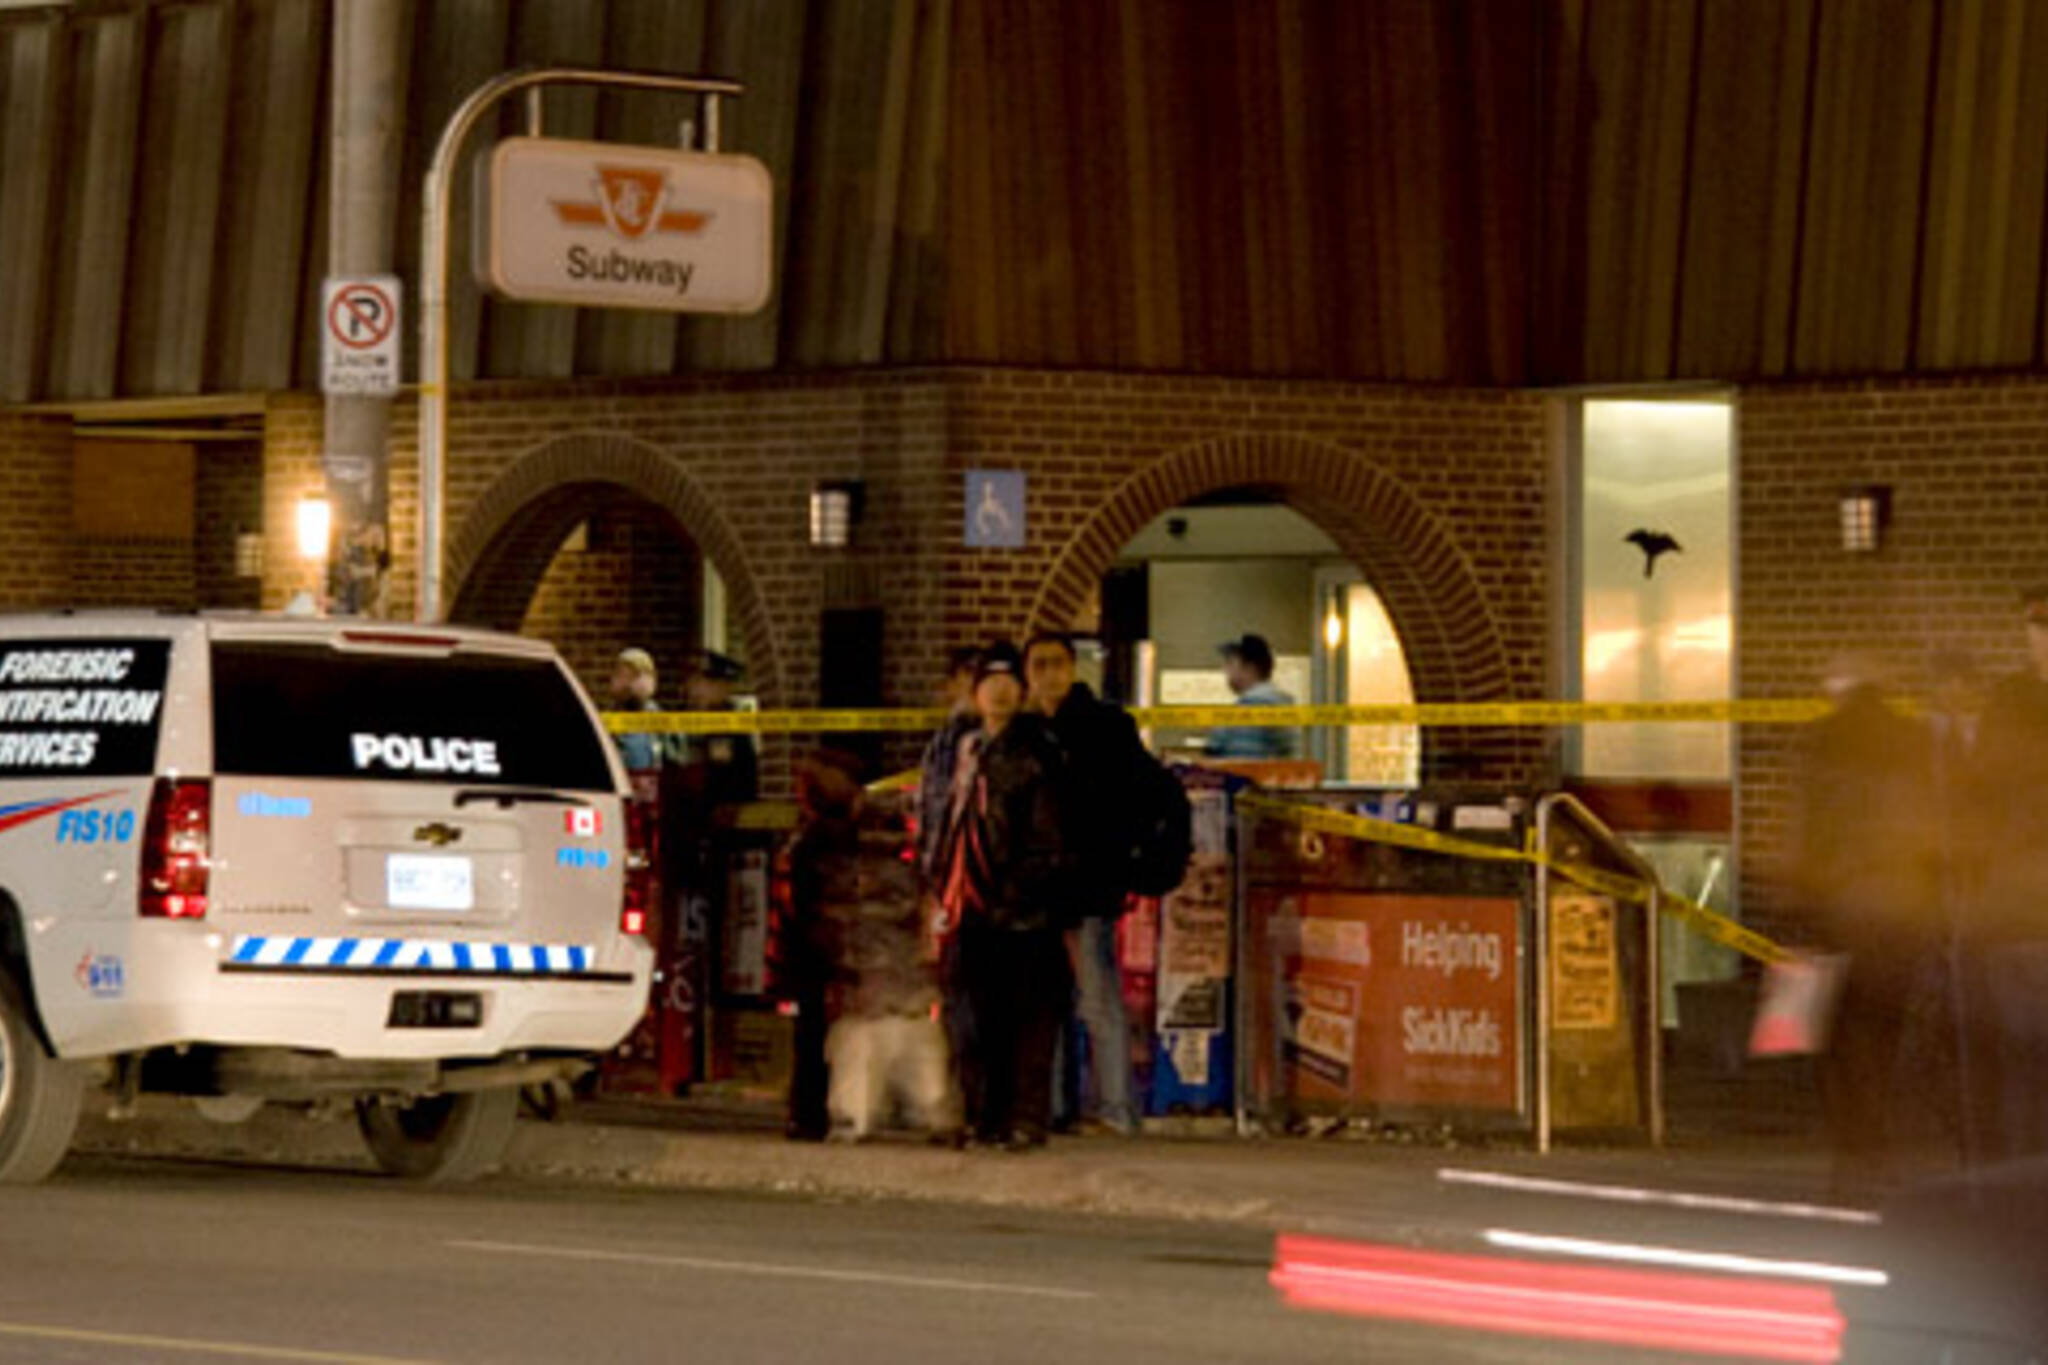 Spadina Station Surrounded by Police after Shooting on the TTC